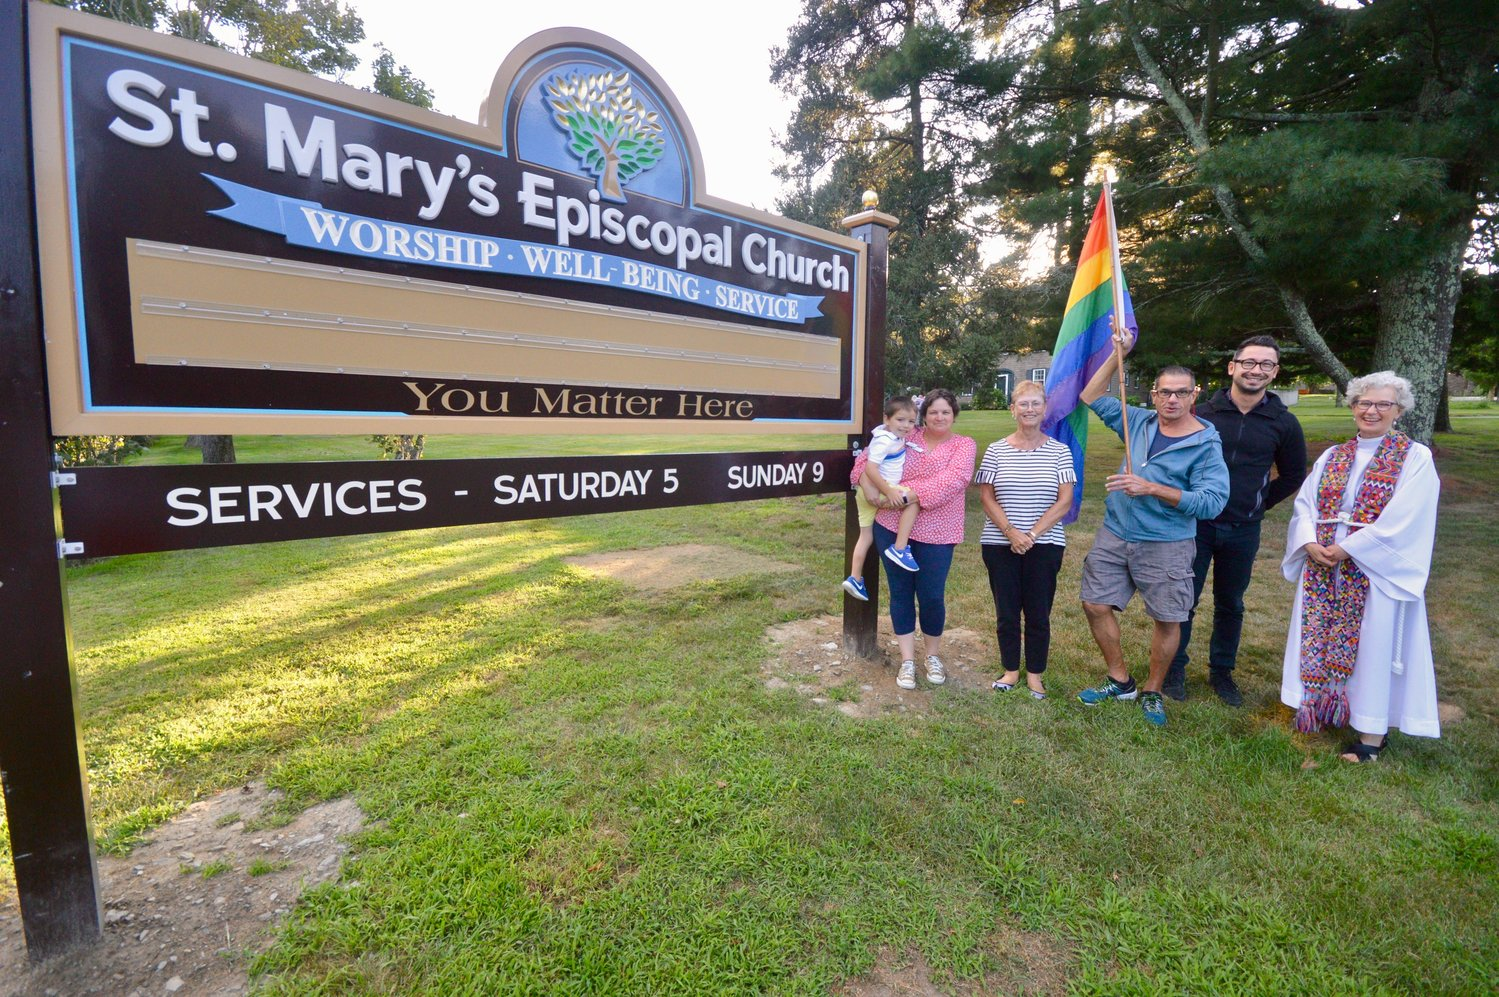 Along with some parishioners and church vestry members, Jennifer Pedrick (far right), rector of St. Mary's Episcopal Church, poses with the church's new sign and rainbow flag that welcomes everyone, including members of the LGBTQ community.